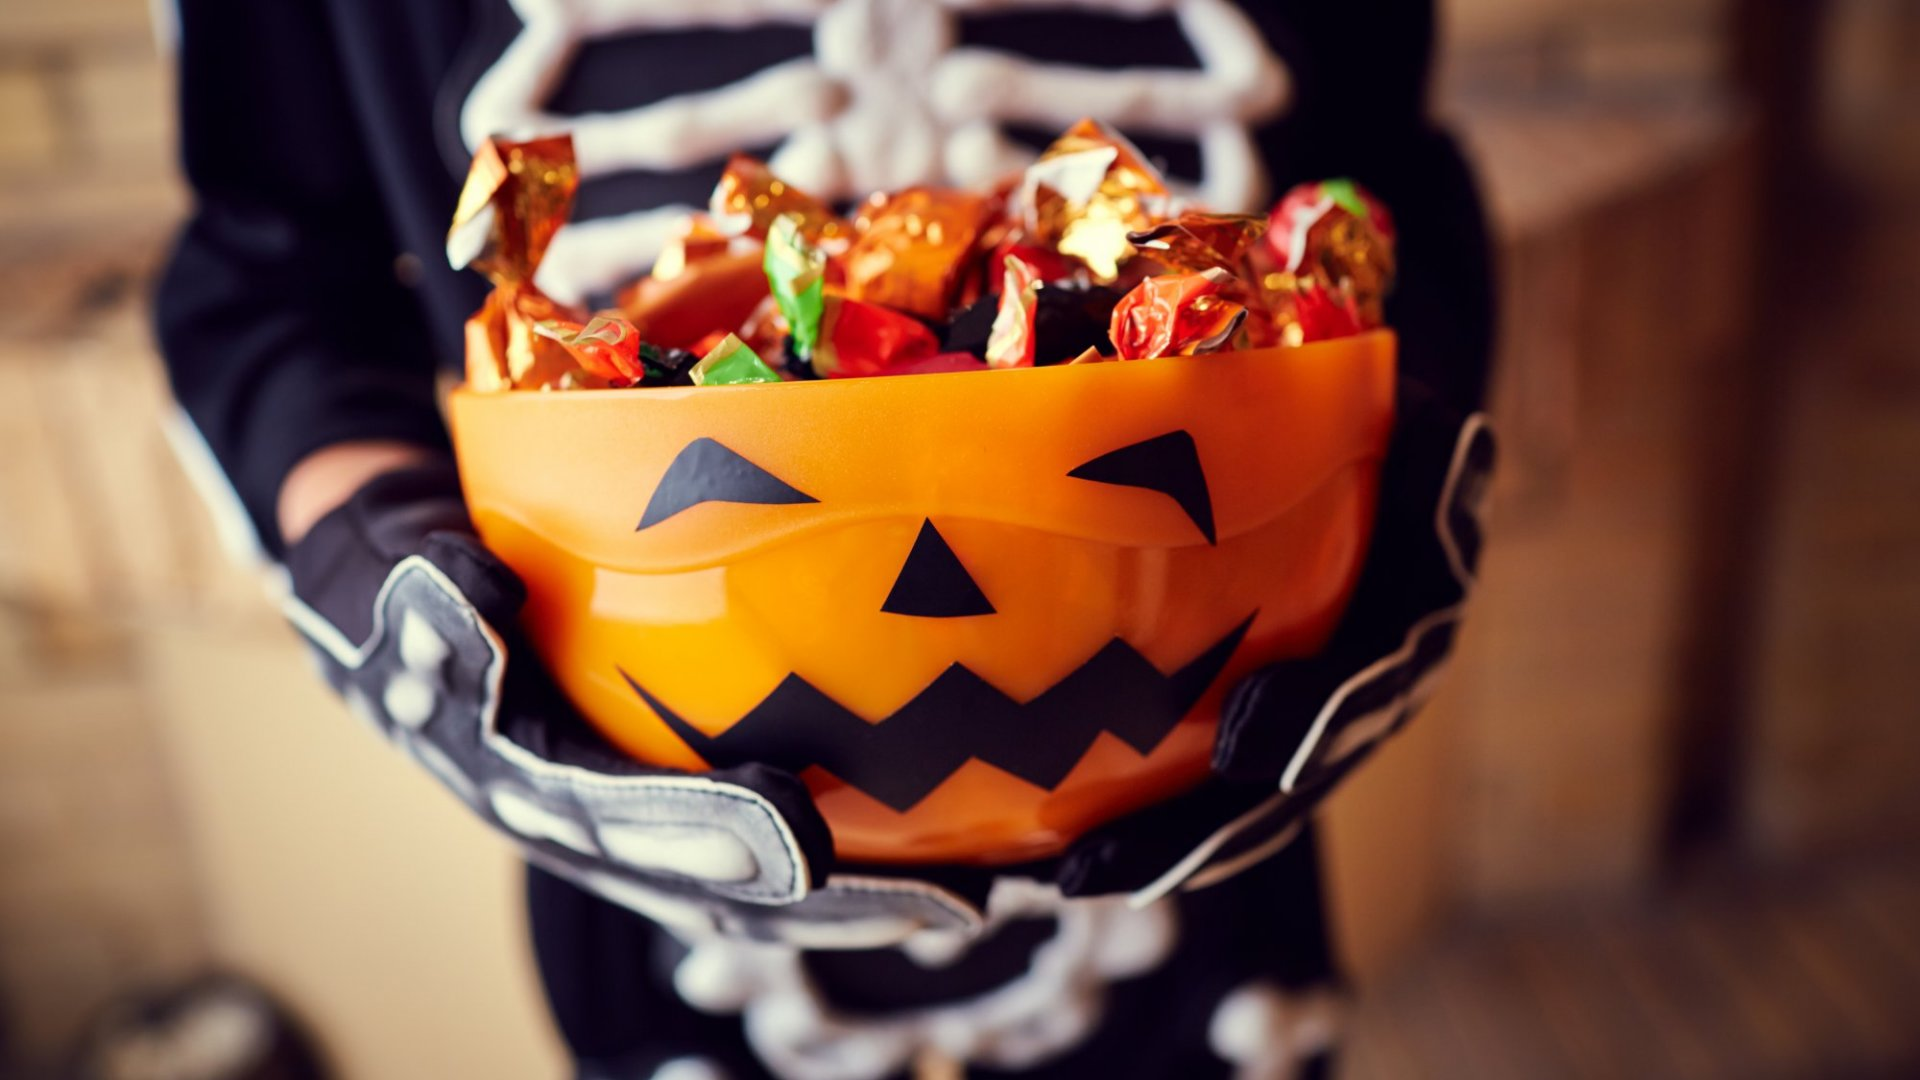 3 Tactics Candy-Obsessed Kids Use on Halloween That Can Make You a Stronger Leader